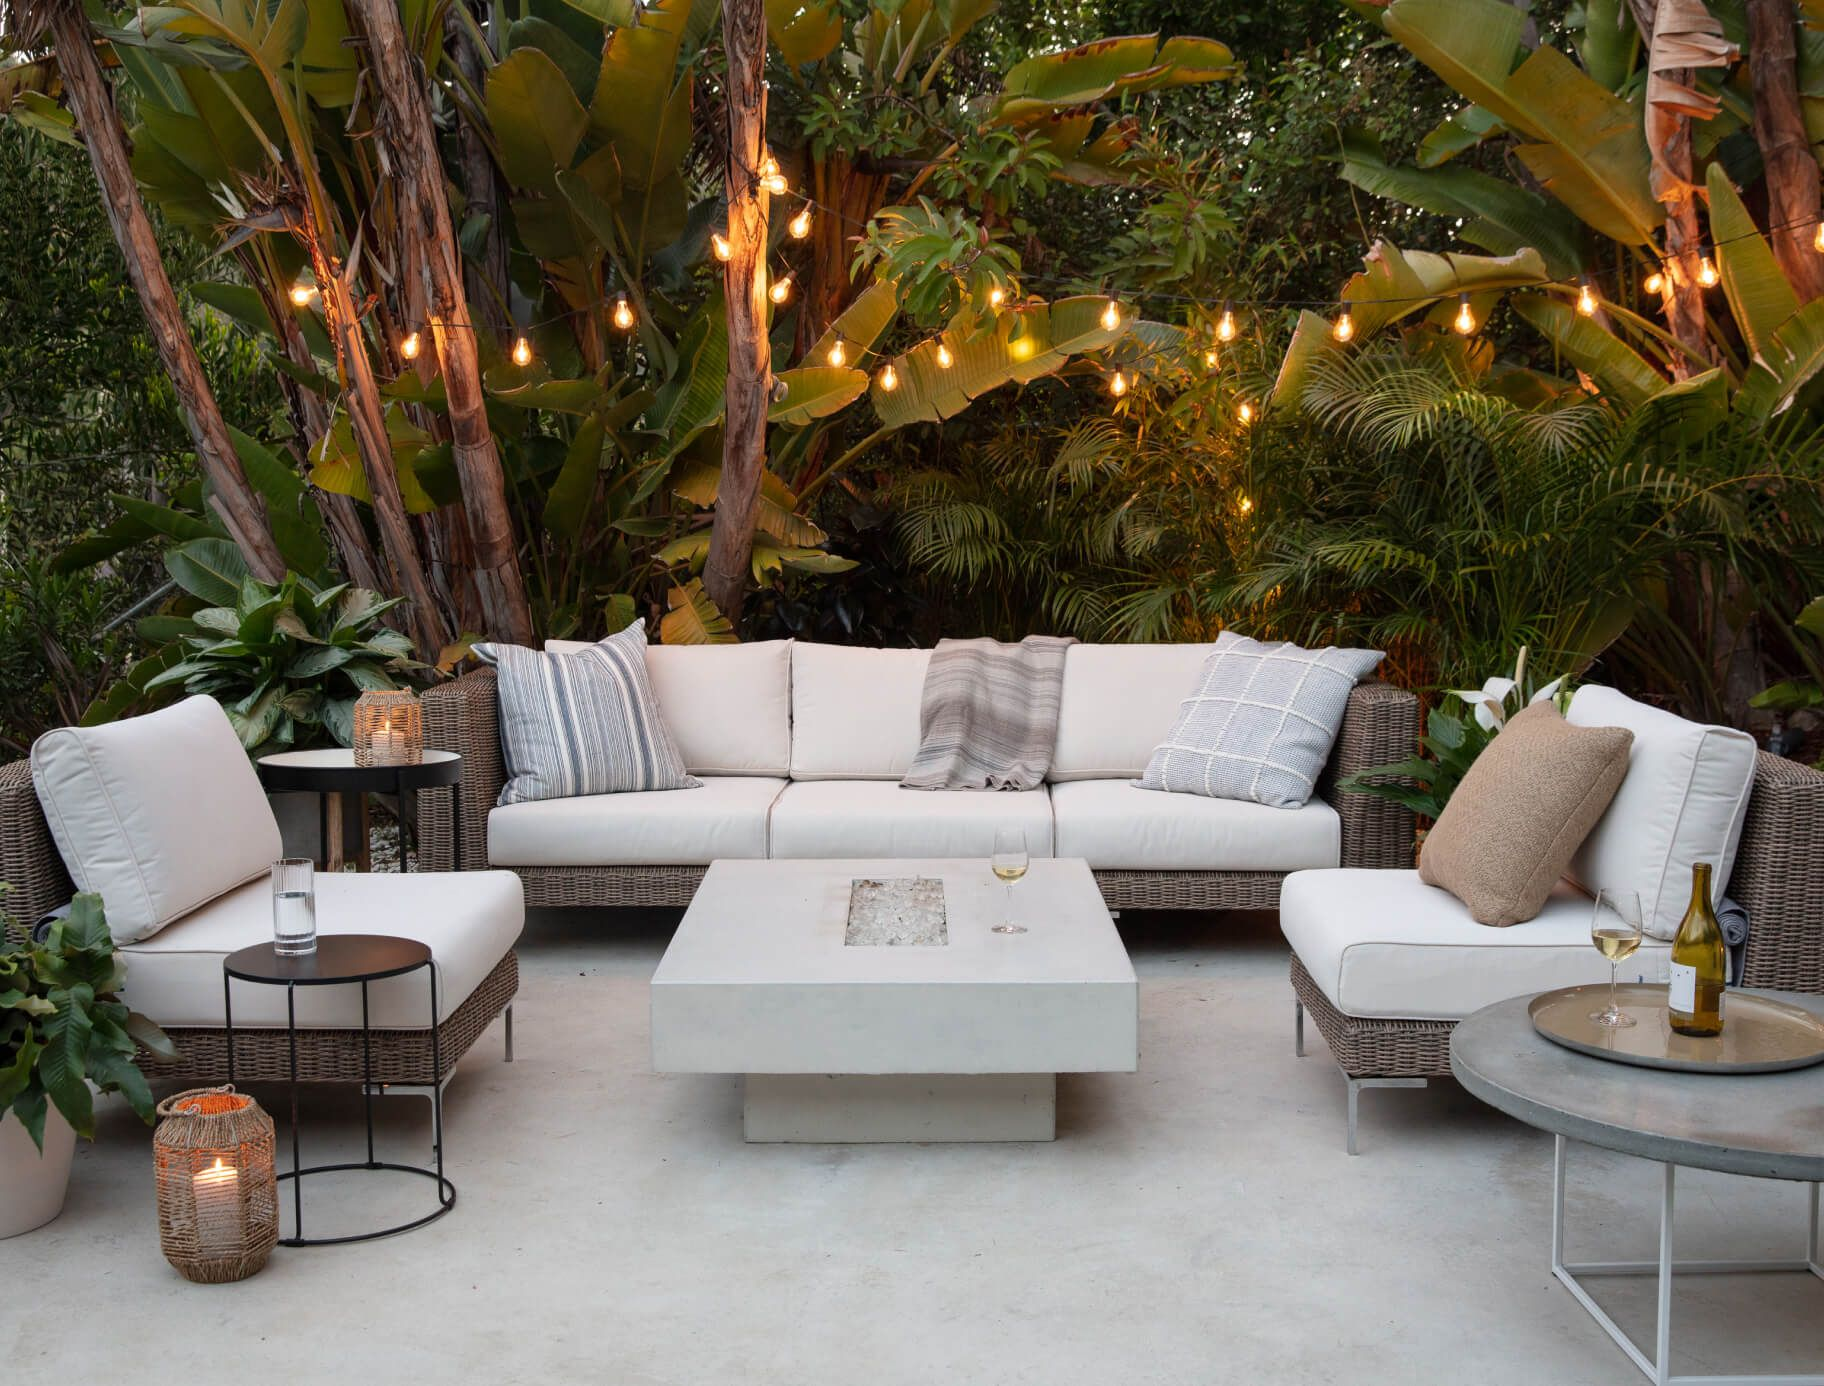 White outdoor furniture with a glass fire pit